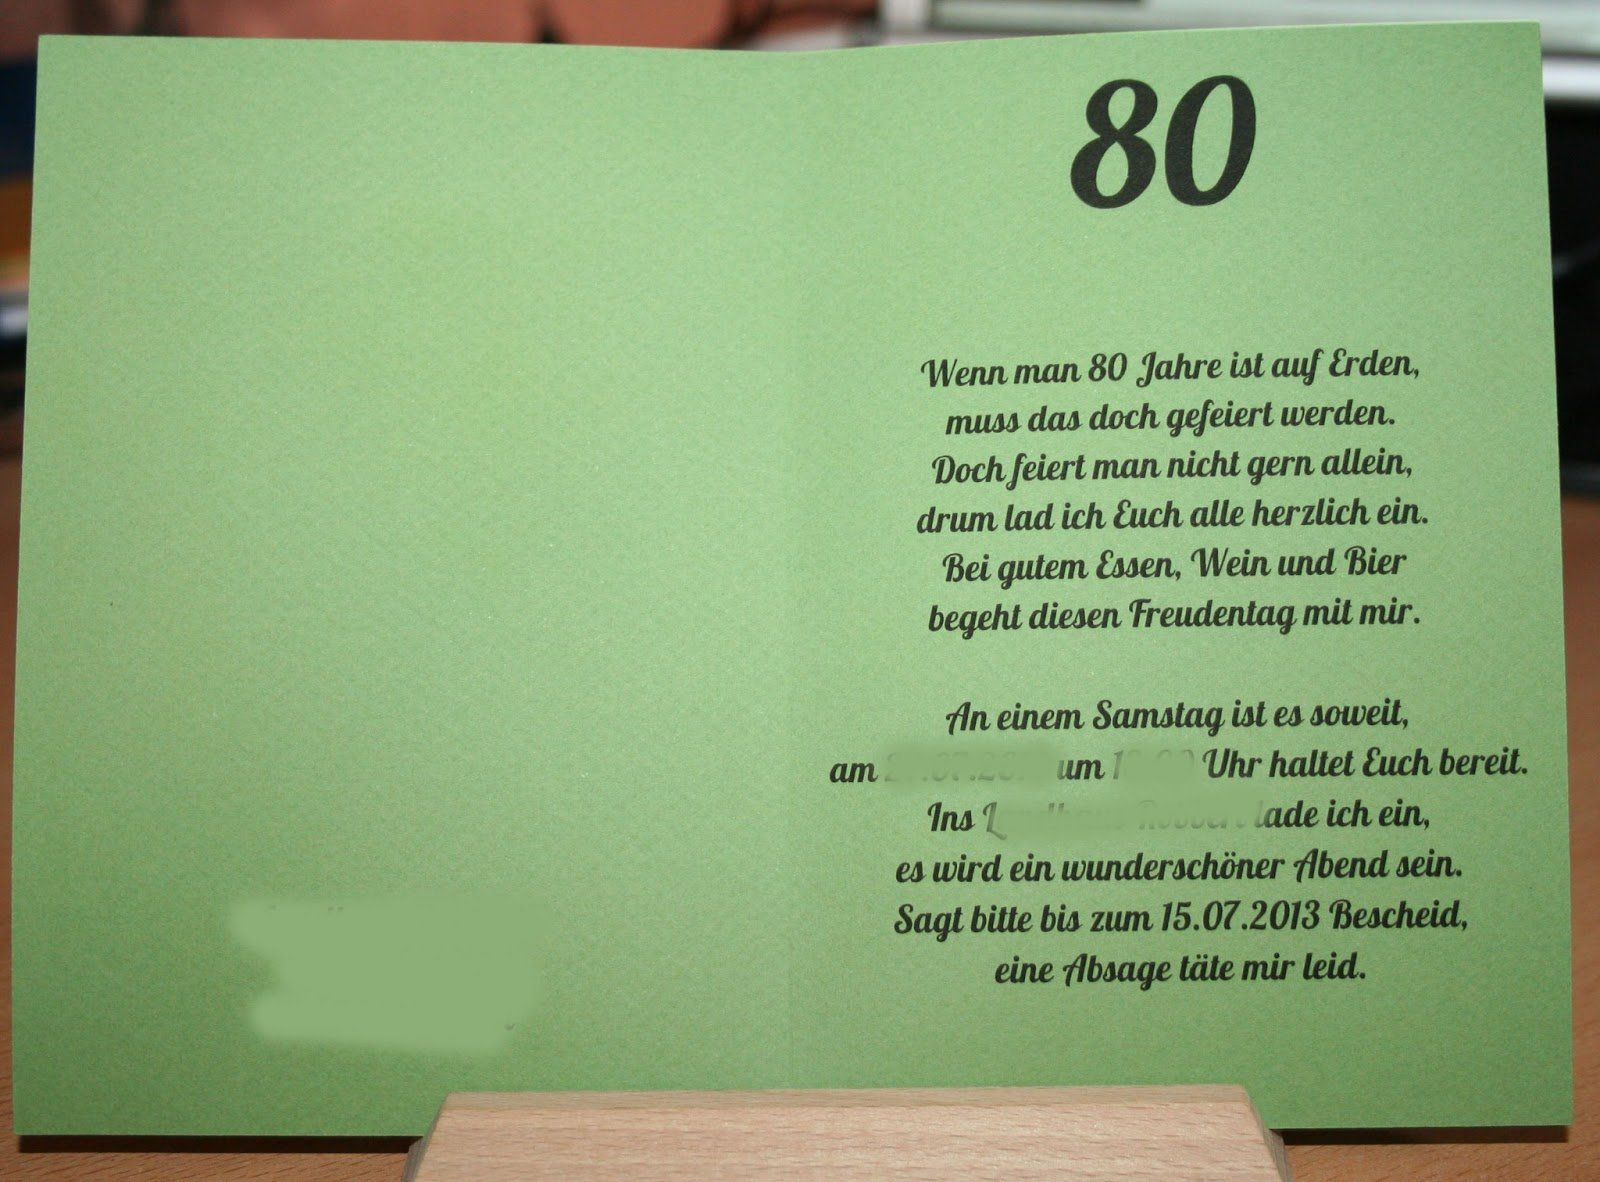 the wonderful einladung 80 geburtstag images below, is part of, Einladungsentwurf